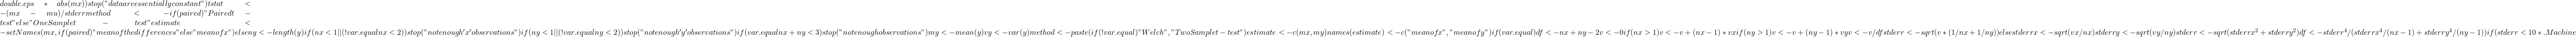 """double.eps * abs(mx))              stop(""""data are essentially constant"""")         tstat <- (mx - mu)/stderr         method <- if (paired)              """"Paired t-test""""         else """"One Sample t-test""""         estimate <- setNames(mx, if (paired)              """"mean of the differences""""         else """"mean of x"""")     }     else {         ny <- length(y)         if (nx < 1    (!var.equal && nx < 2))              stop(""""not enough 'x' observations"""")         if (ny < 1    (!var.equal && ny < 2))              stop(""""not enough 'y' observations"""")         if (var.equal && nx + ny < 3)              stop(""""not enough observations"""")         my <- mean(y)         vy <- var(y)         method <- paste(if (!var.equal)              """"Welch"""", """"Two Sample t-test"""")         estimate <- c(mx, my)         names(estimate) <- c(""""mean of x"""", """"mean of y"""")         if (var.equal) {             df <- nx + ny - 2             v <- 0             if (nx > 1)                  v <- v + (nx - 1) * vx             if (ny > 1)                  v <- v + (ny - 1) * vy             v <- v/df             stderr <- sqrt(v * (1/nx + 1/ny))         }         else {             stderrx <- sqrt(vx/nx)             stderry <- sqrt(vy/ny)             stderr <- sqrt(stderrx^2 + stderry^2)             df <- stderr^4/(stderrx^4/(nx - 1) + stderry^4/(ny -                  1))         }         if (stderr < 10 * .Machine"""